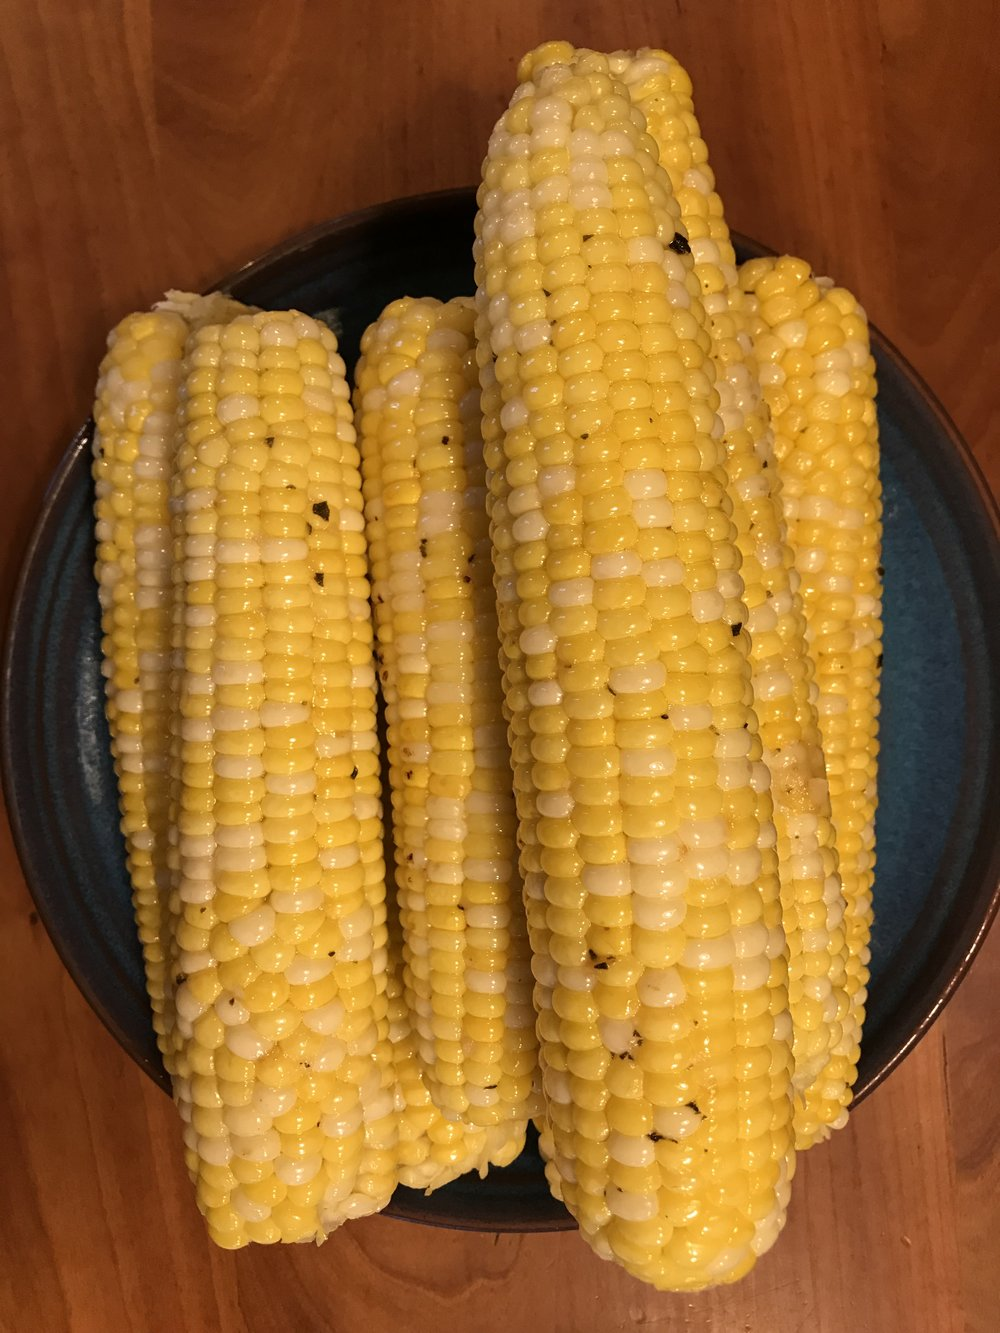 Simon and Garfunkel butter on fresh corn